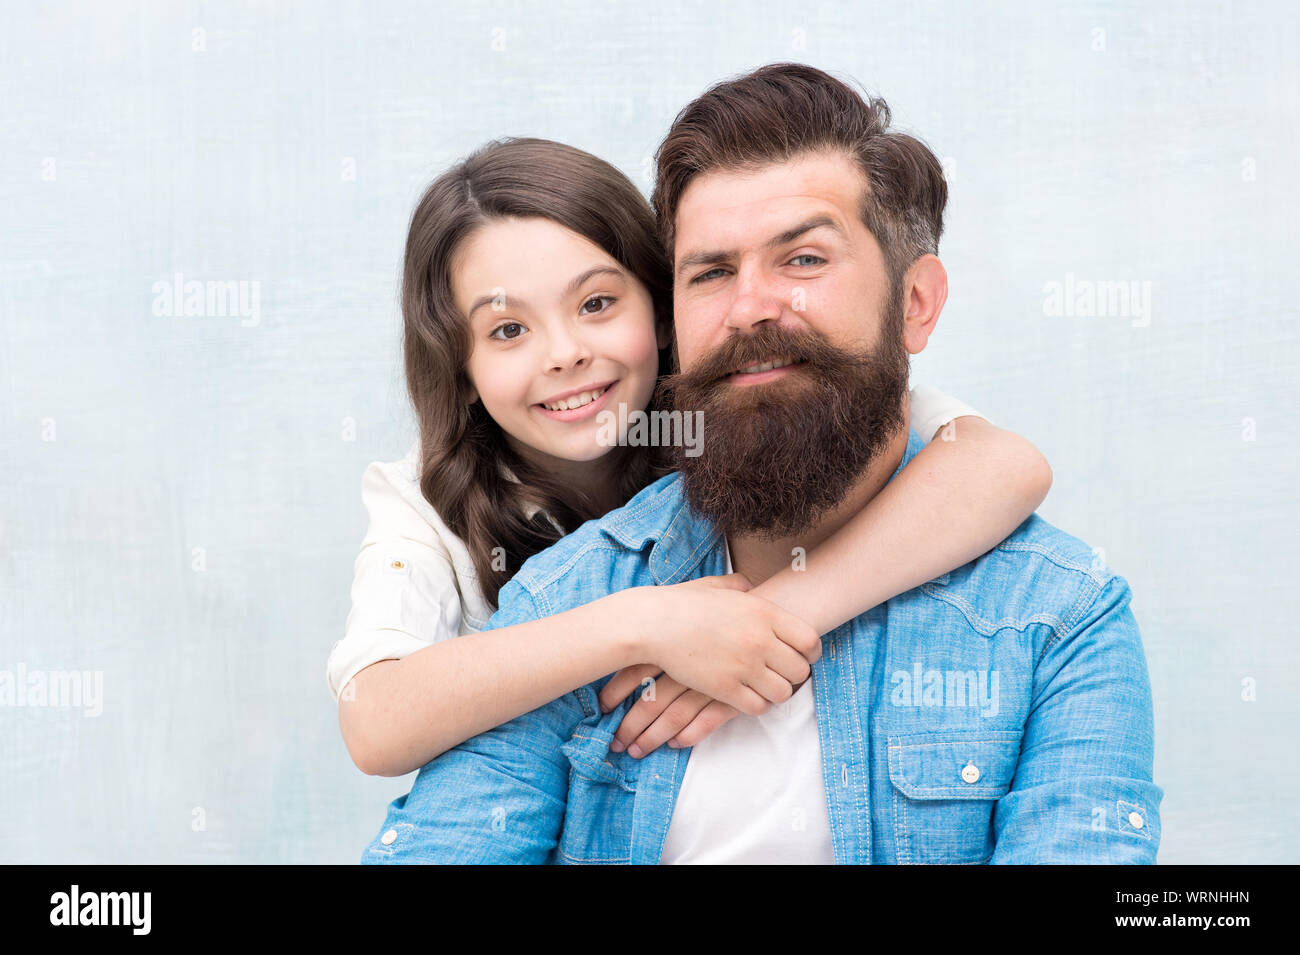 Family Hug Strengthening Father Daughter Relationships Child And Dad Best Friends Friendly Relations Fathers Day Concept Lovely Father And Cute Kid Father And Daughter Hug Light Background Stock Photo Alamy